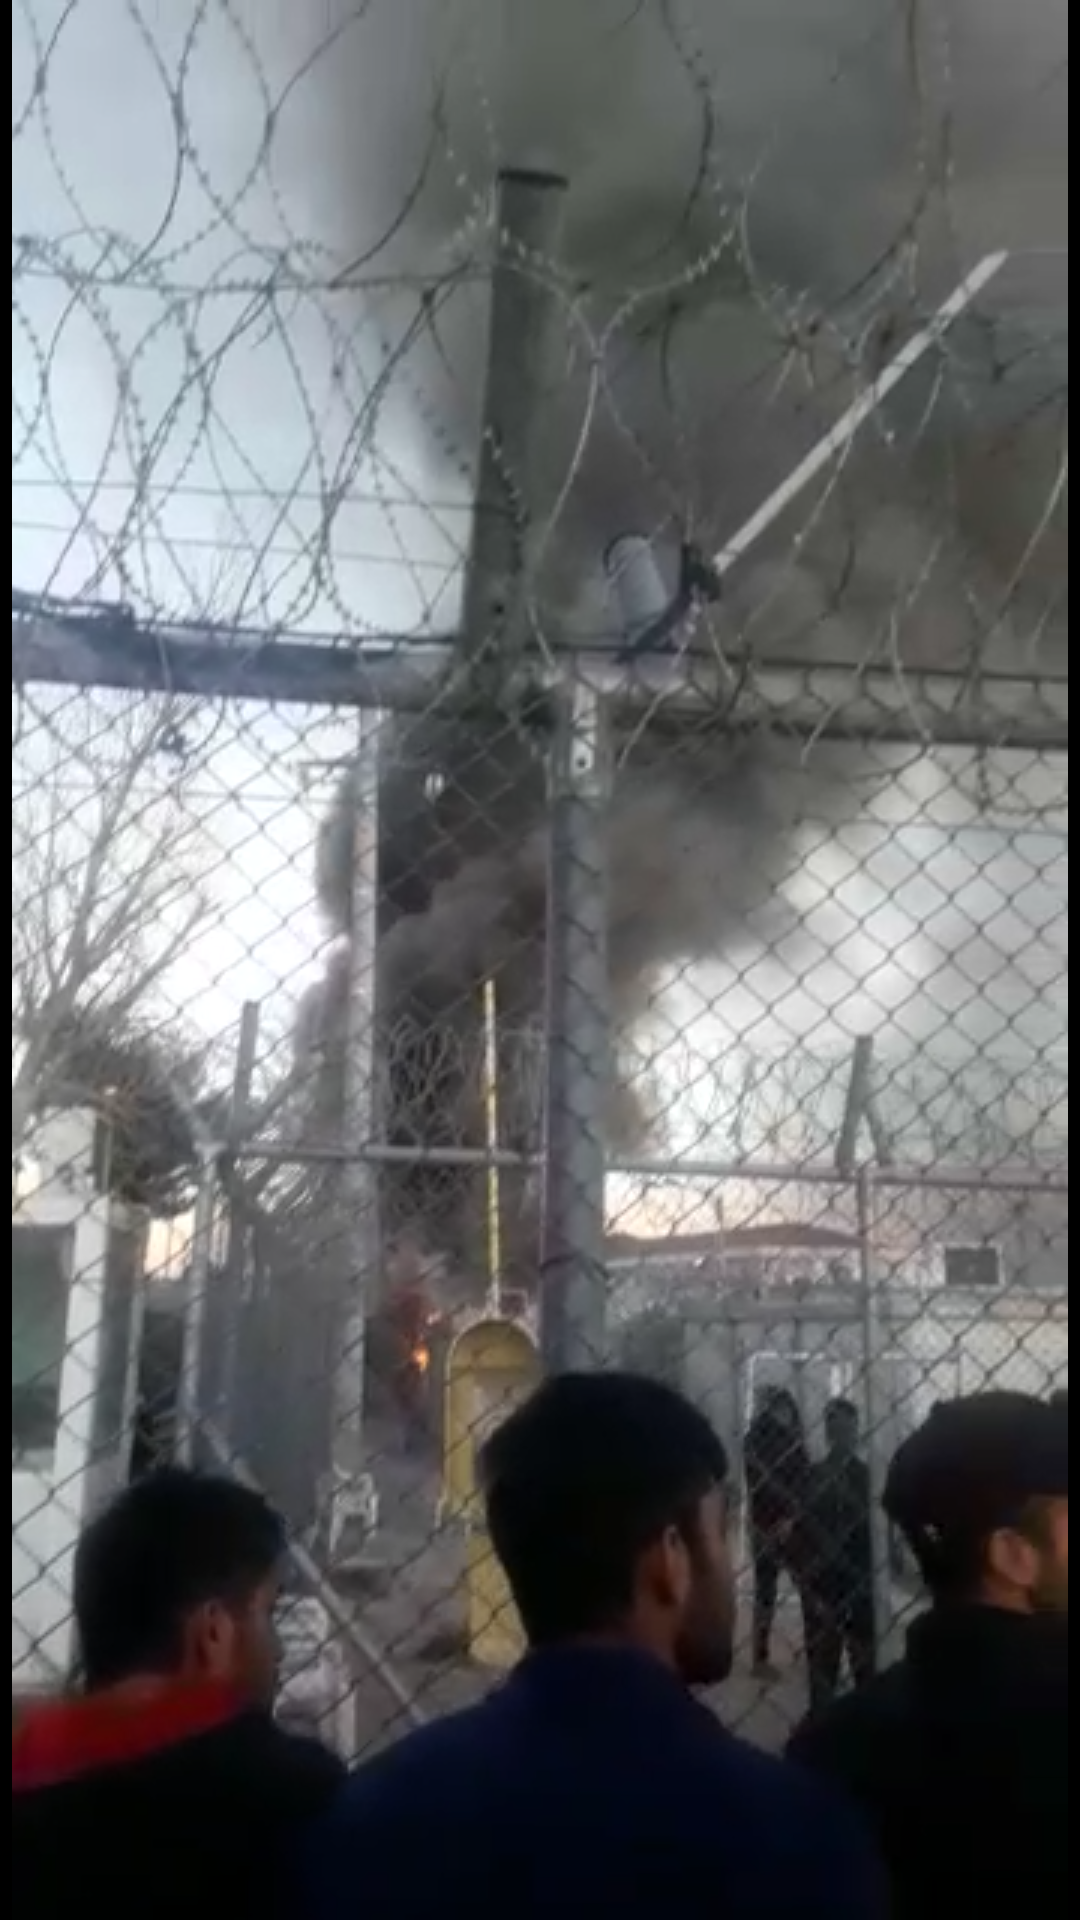 Amygdaleza is burning—photo report from a Greek immigration detention centre